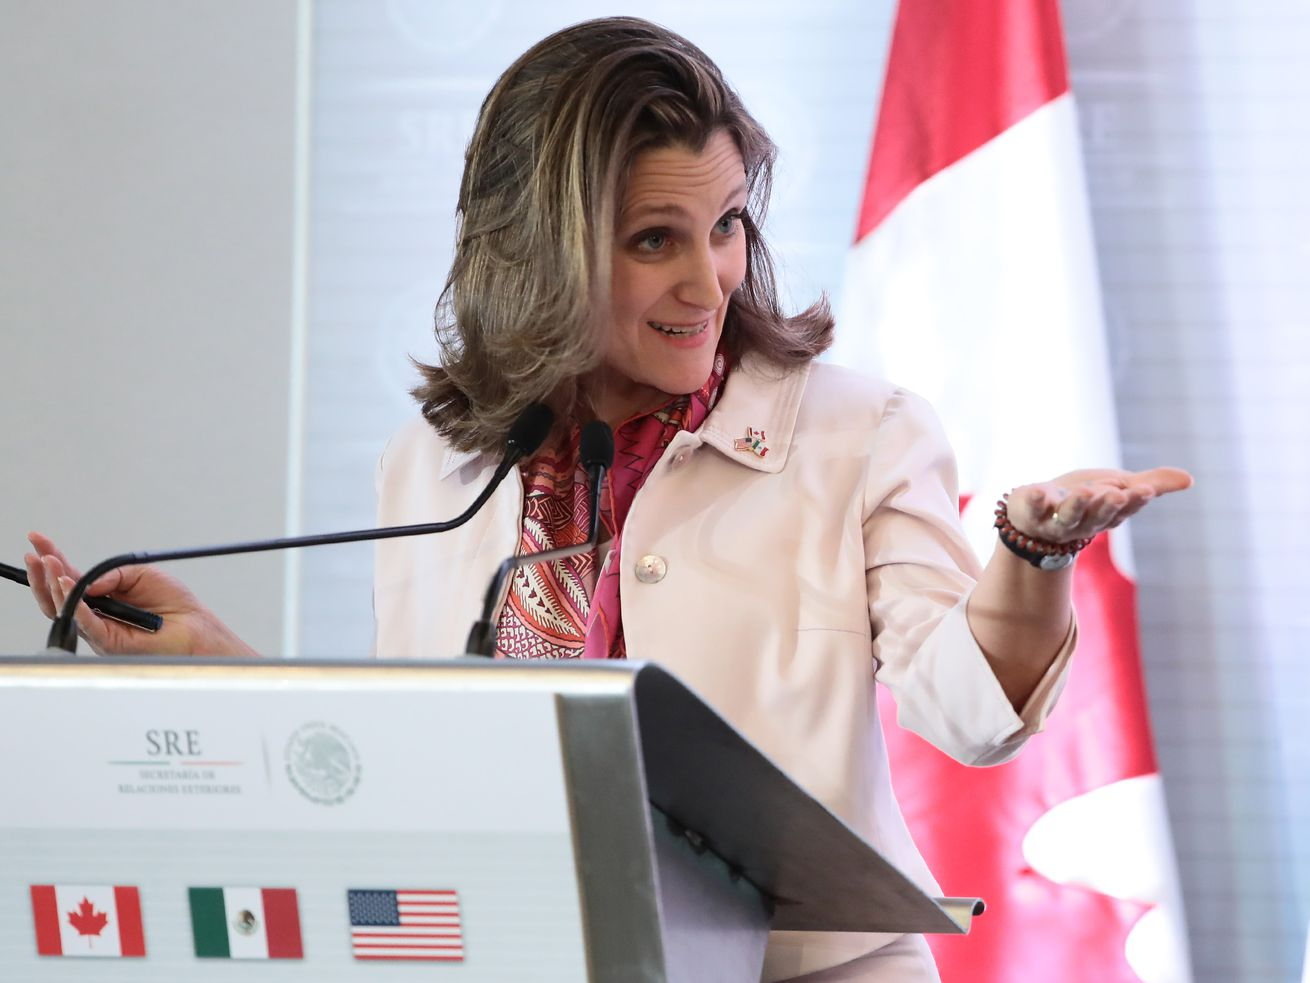 Chrystia Freeland, the foreign minister of Canada, in February 2018.